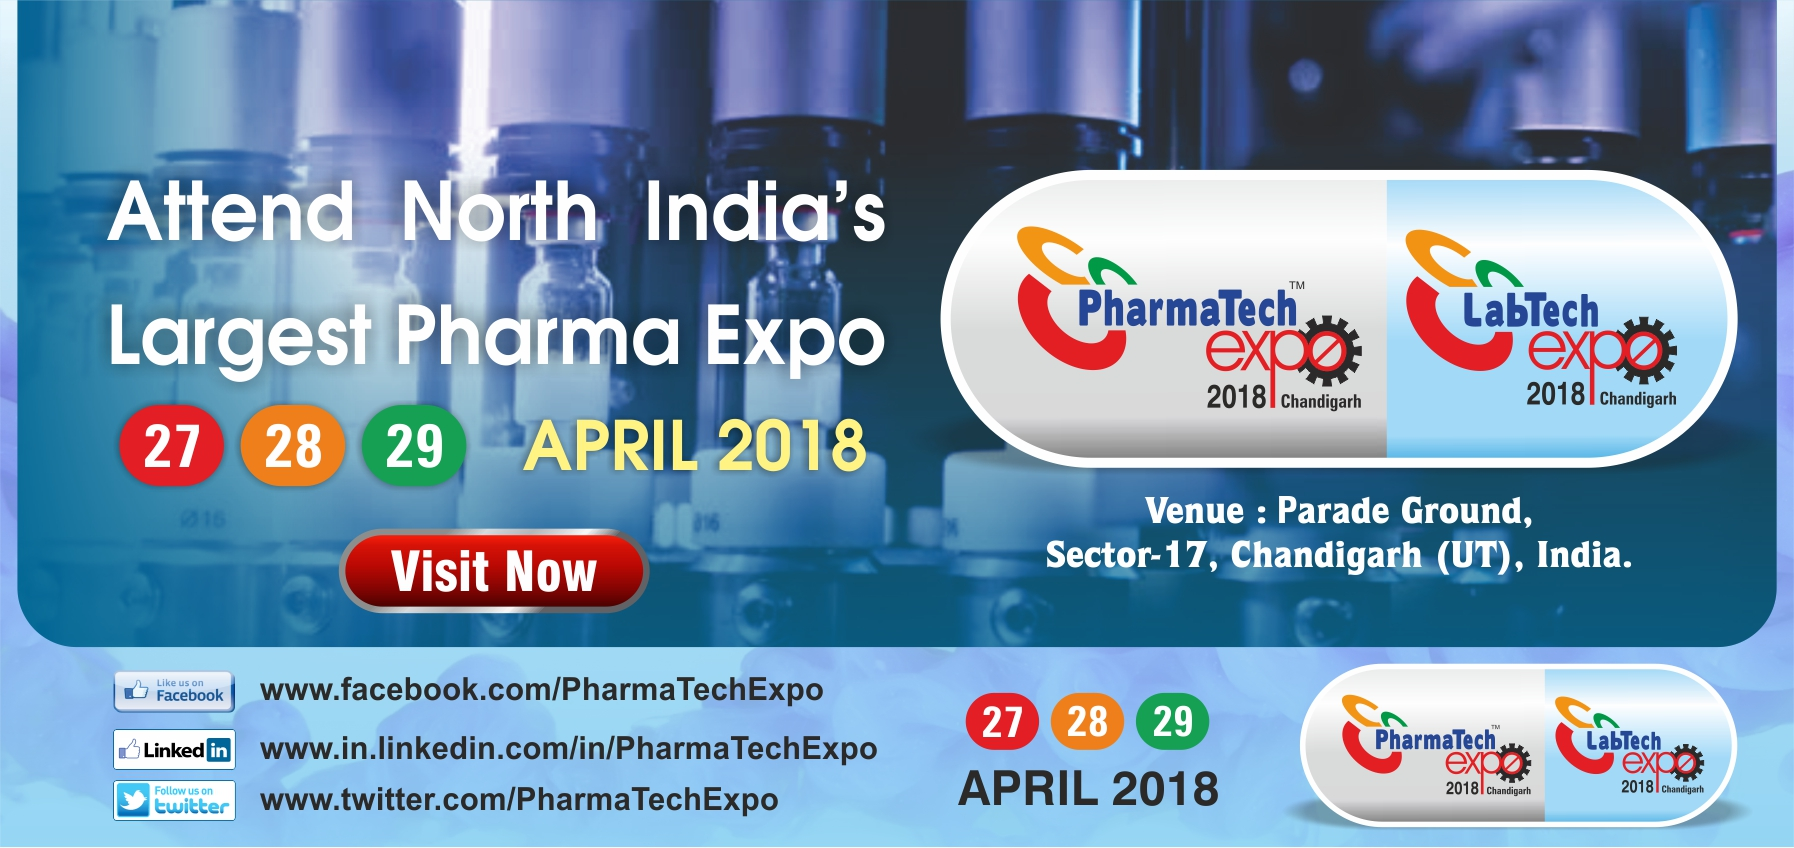 North India's Largest Pharma Expo